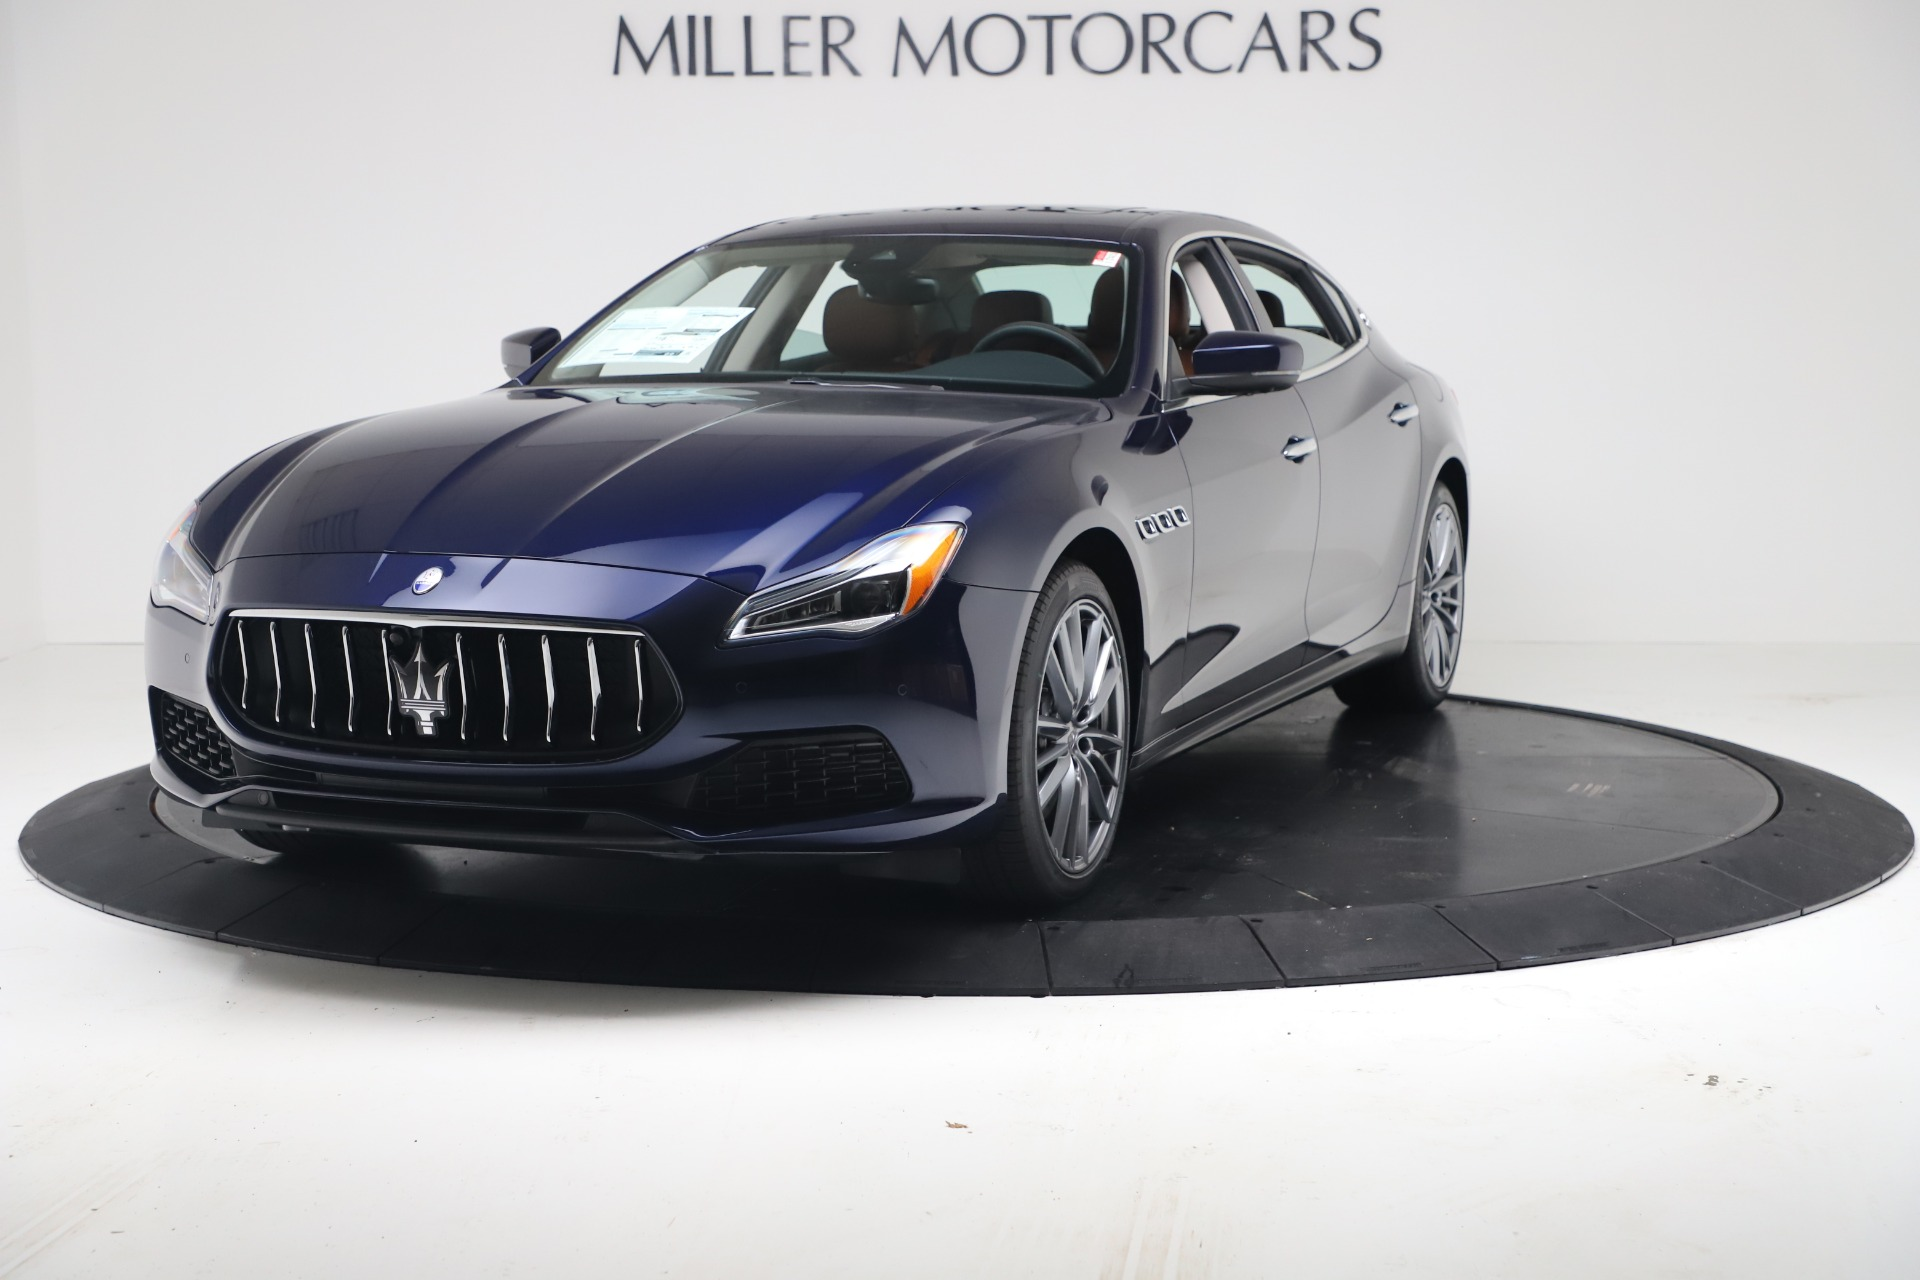 New 2019 Maserati Quattroporte S Q4 for sale Sold at Aston Martin of Greenwich in Greenwich CT 06830 1